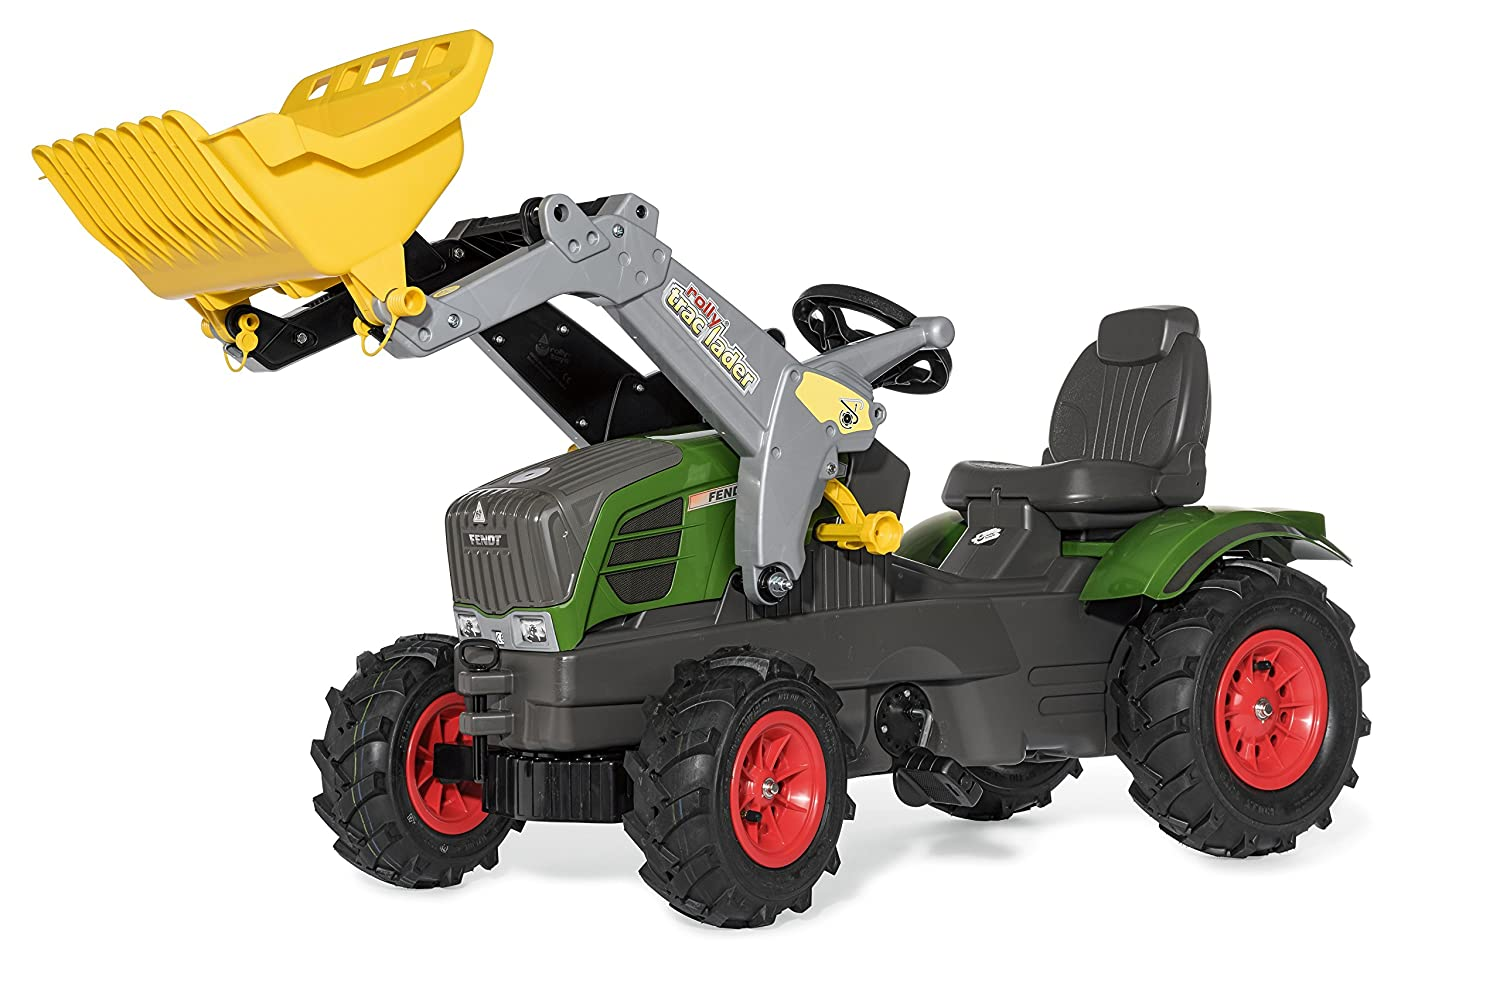 Kinder Traktor Fendt - Rolly Toys 611089